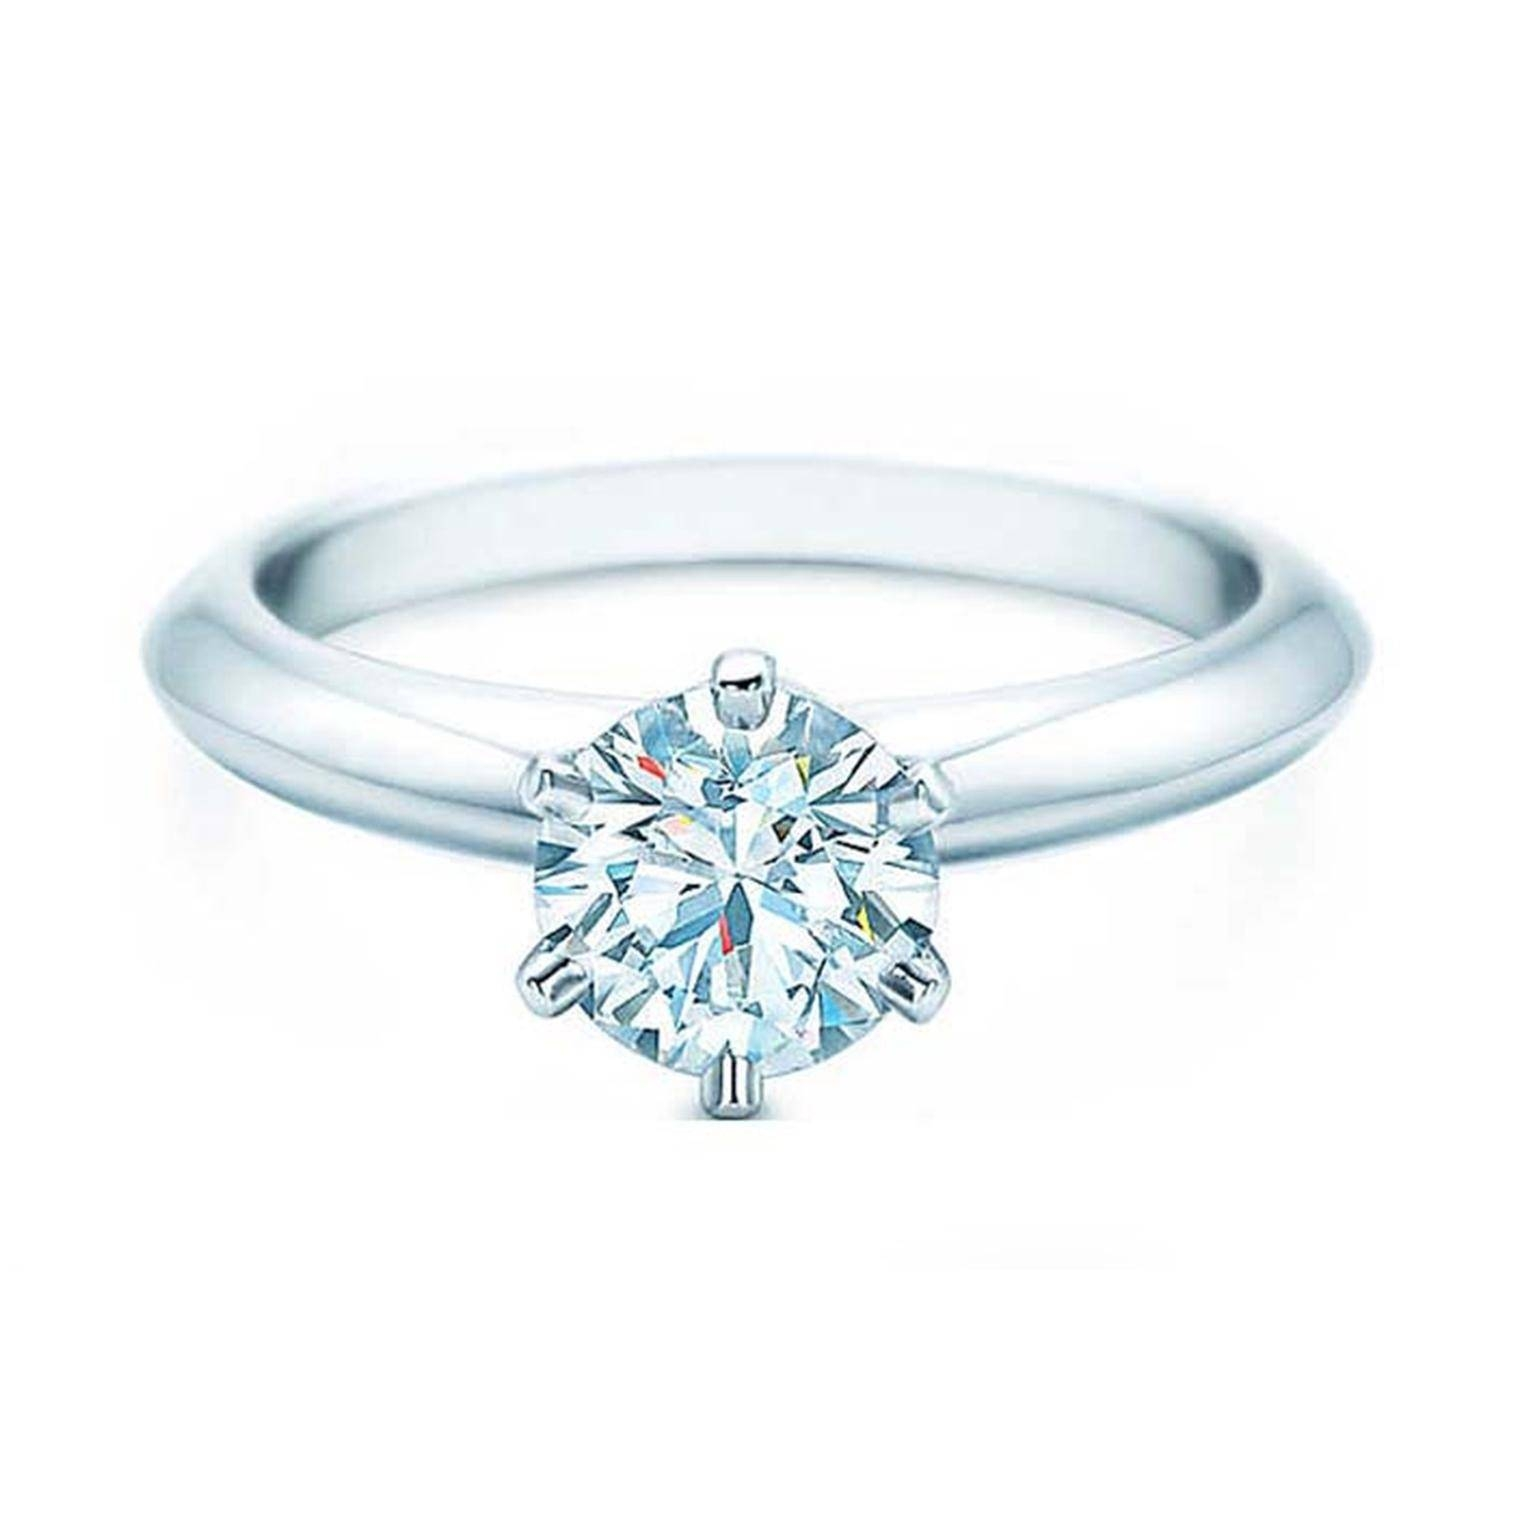 1 Carat Diamond Tiffany Setting Engagement Ring | Tiffany & Co Pertaining To Recent One Carat Diamond Wedding Bands (View 3 of 15)